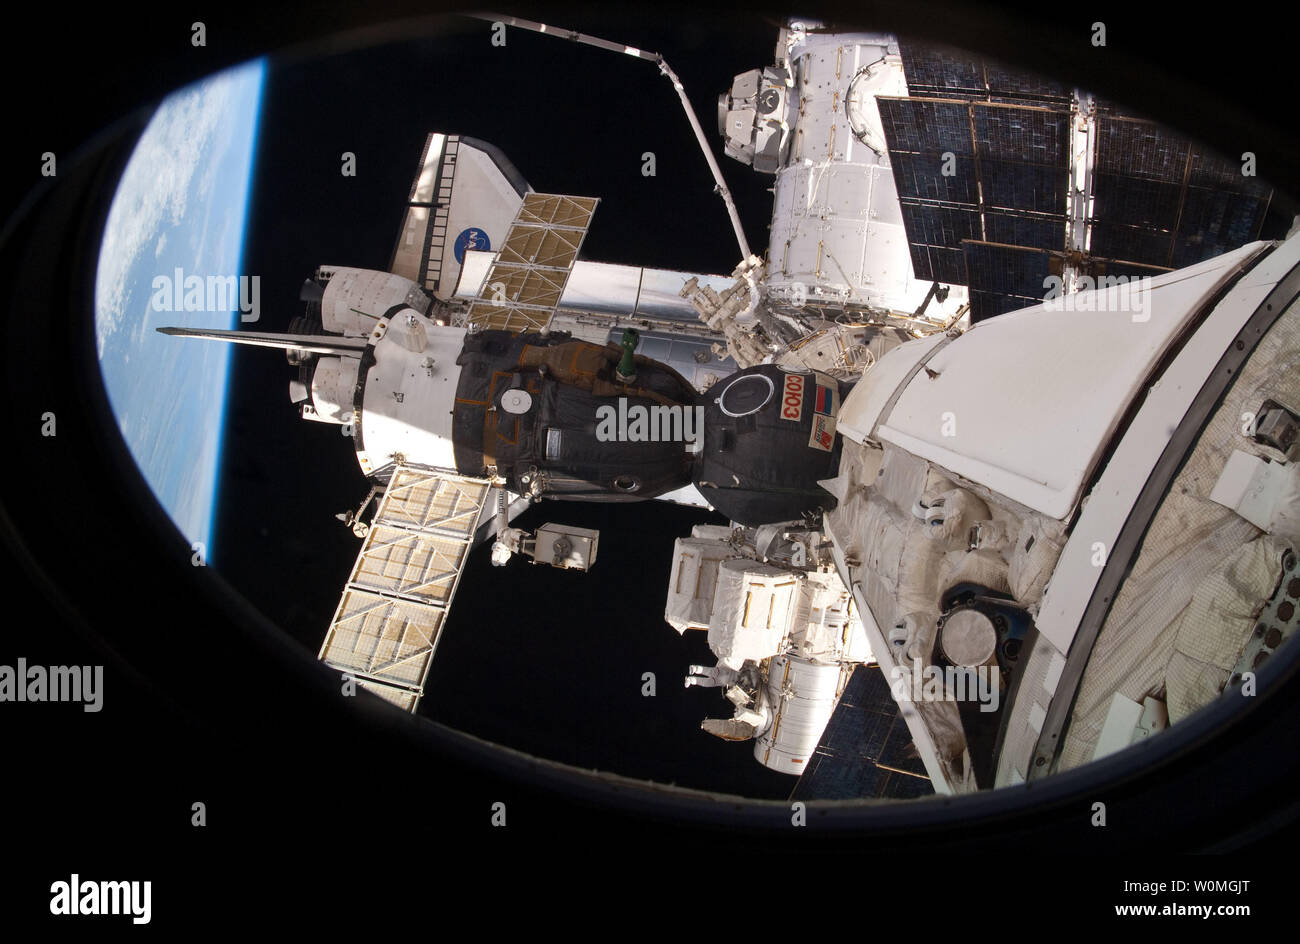 This April 13, 2010 NASA image shows NASA astronaut Rick Mastracchio (bottom center), STS-131 mission specialist, as he works near the Quest airlock during the mission's third and final session of extravehicular activity (EVA) as construction and maintenance continue on the orbital complex. During the six-hour, 24-minute spacewalk, Mastracchio and astronaut Clayton Anderson (out of frame), mission specialist, hooked up fluid lines of the new 1,700-pound tank, retrieved some micrometeoroid shields from the Quest airlock's exterior, relocated a portable foot restraint and prepared cables on the Stock Photo